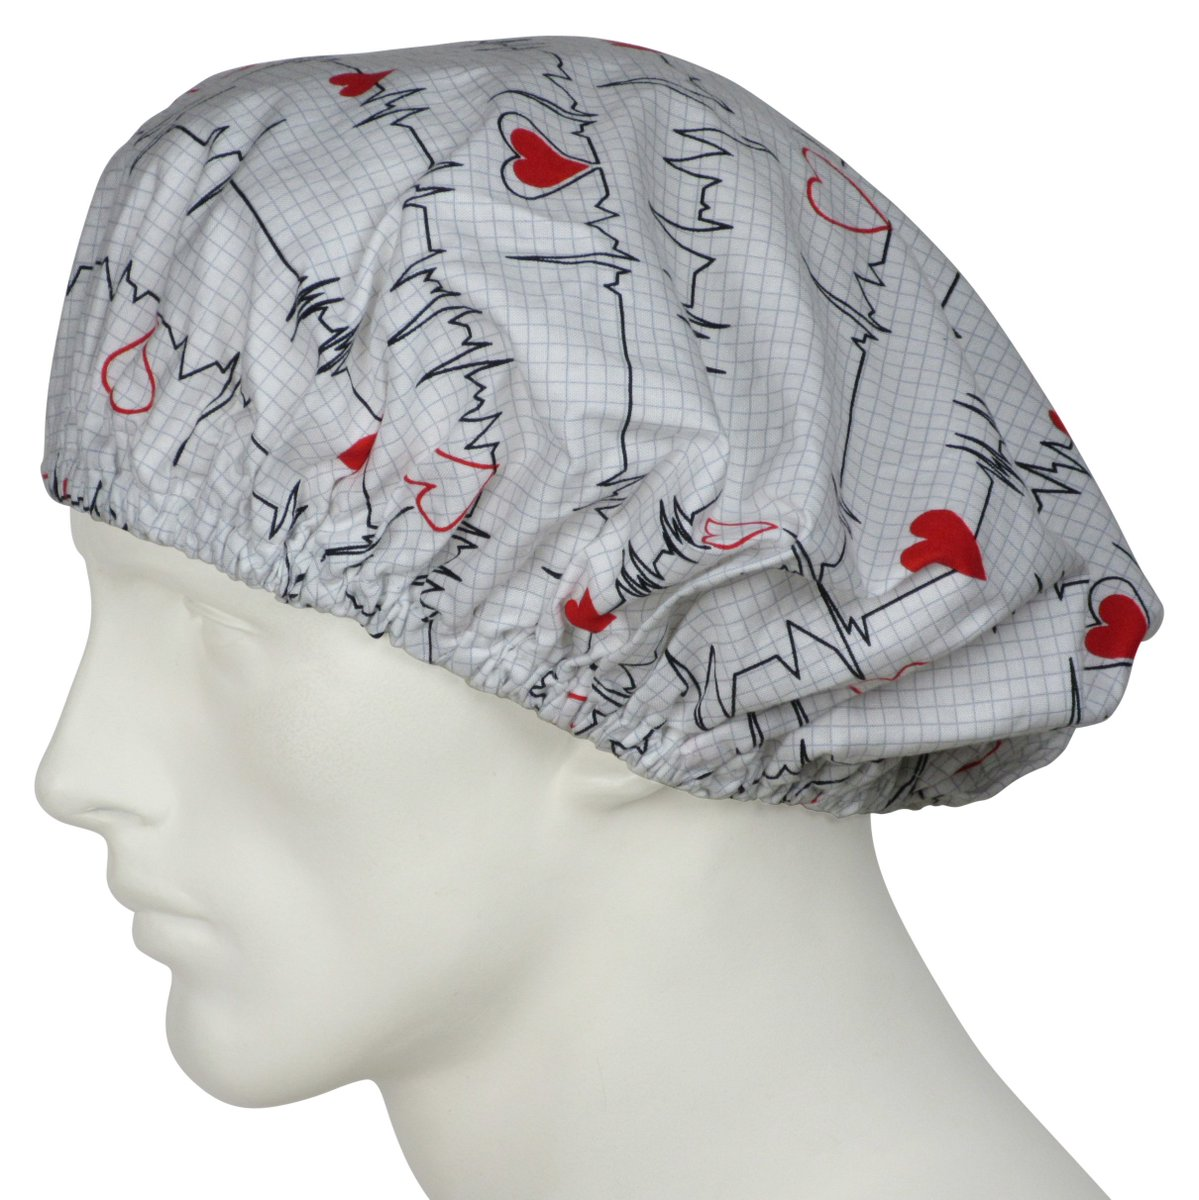 1d2d0253740 Bouffant Scrub Caps, Bouffant Surgical Caps USA Made In Stock Ships  Worldwide Daily 100% Cotton designer fabrics Top Quality USA Sewing  #bouffantcaps ...